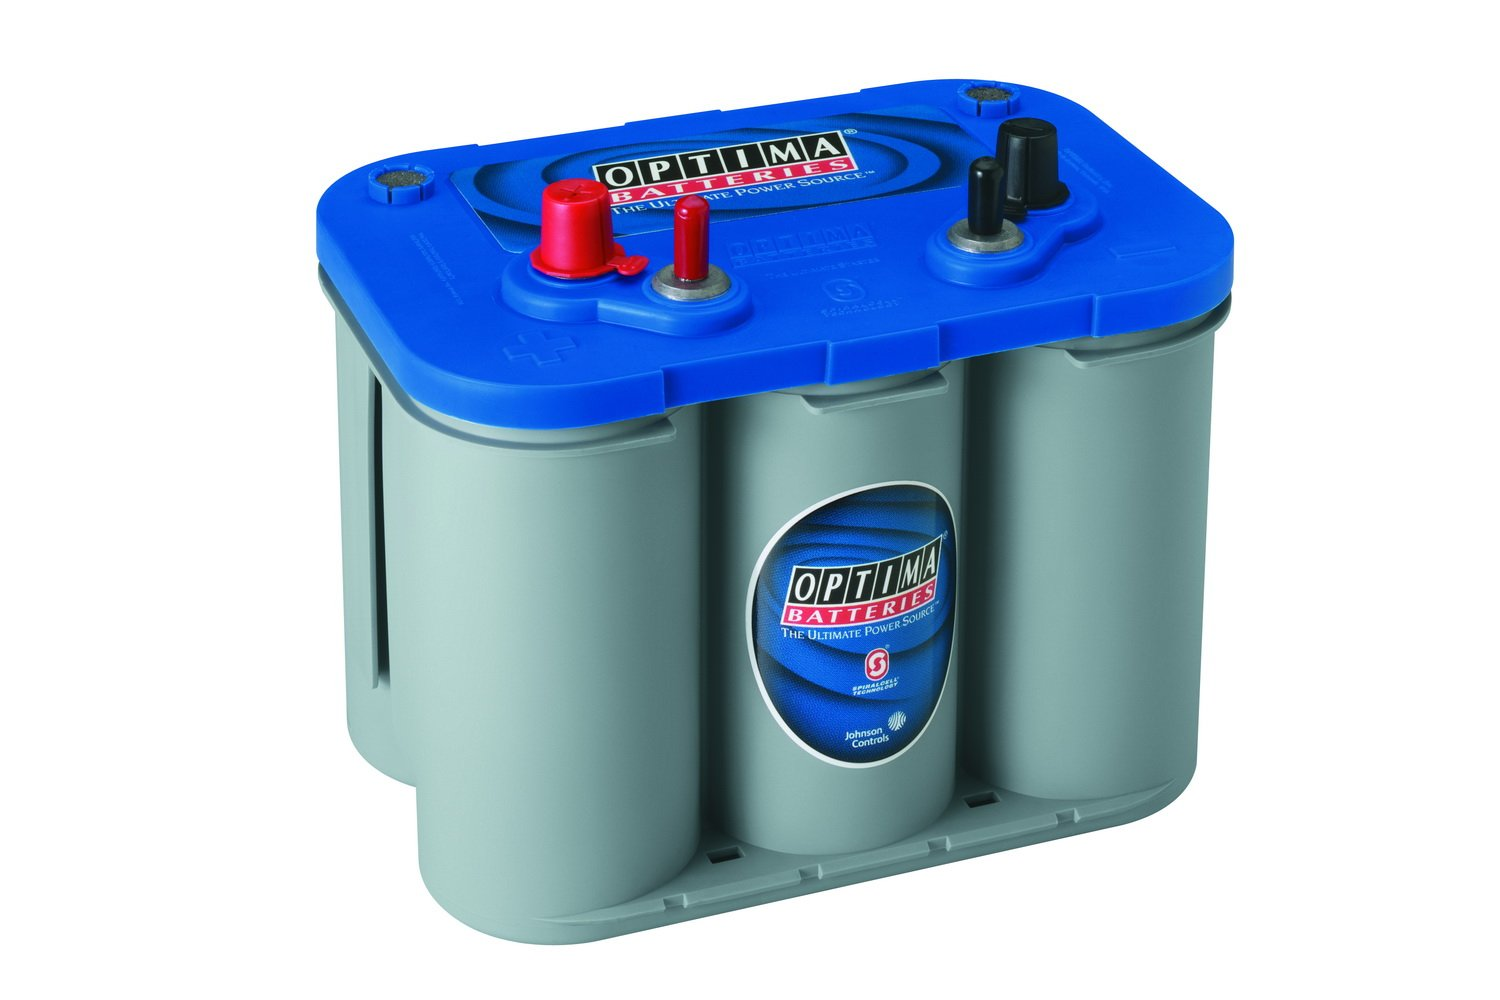 Best Camper Van Batteries - Optima blue top